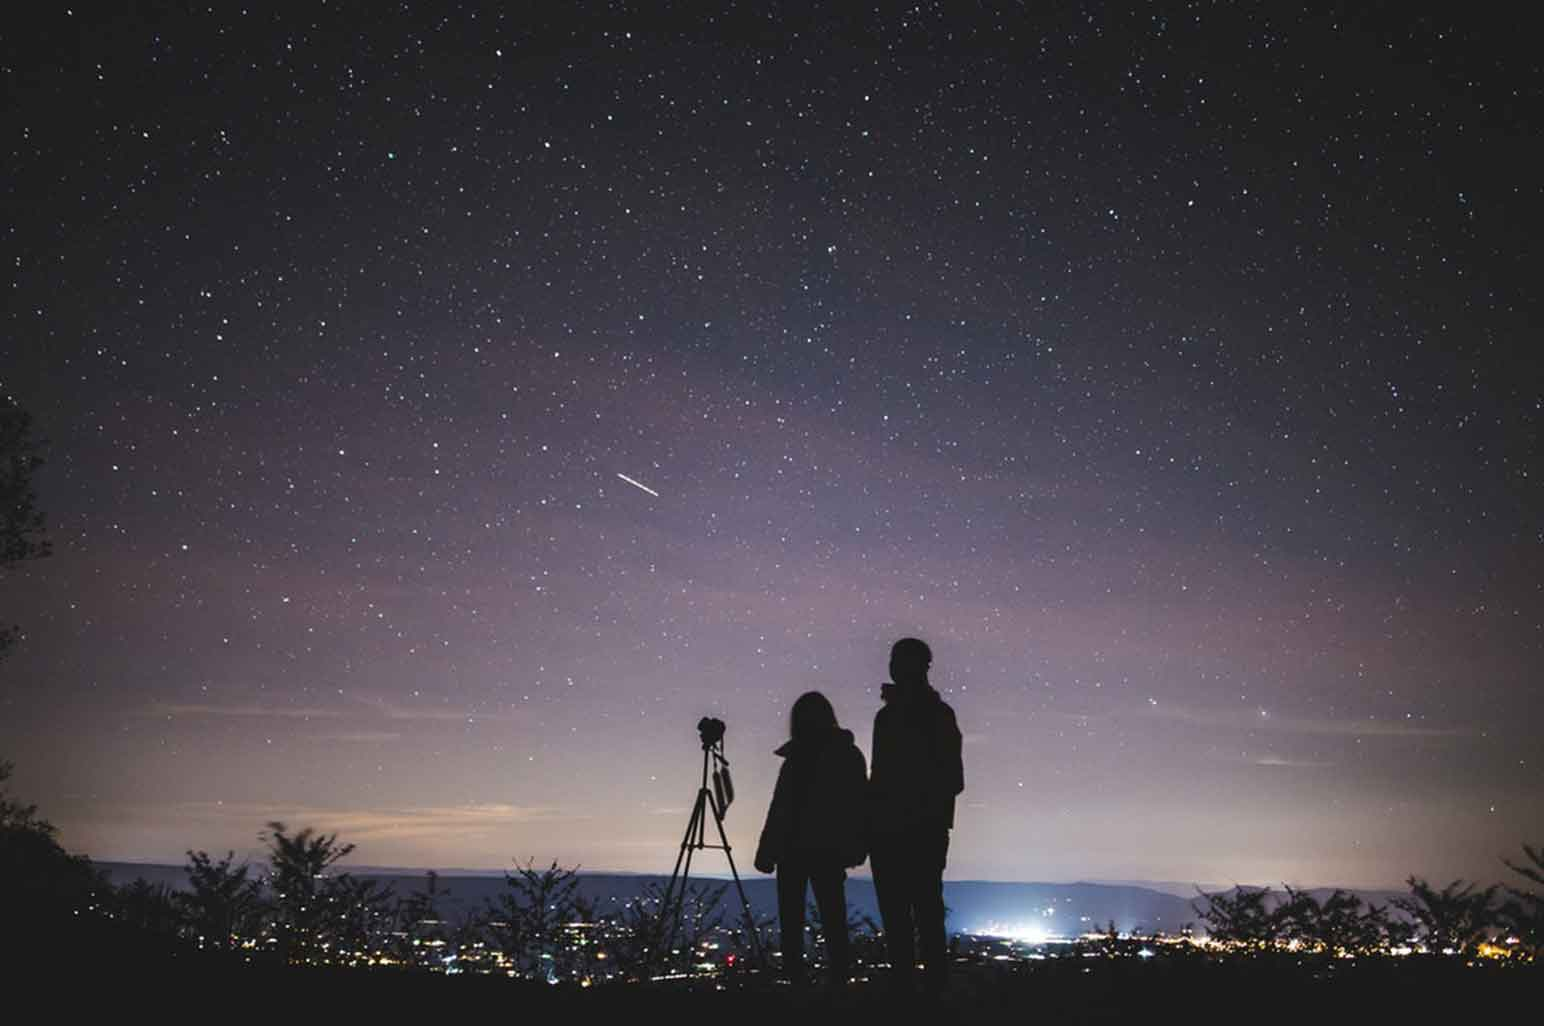 Take Your Stargazing to the Next Level With These Simple Tips